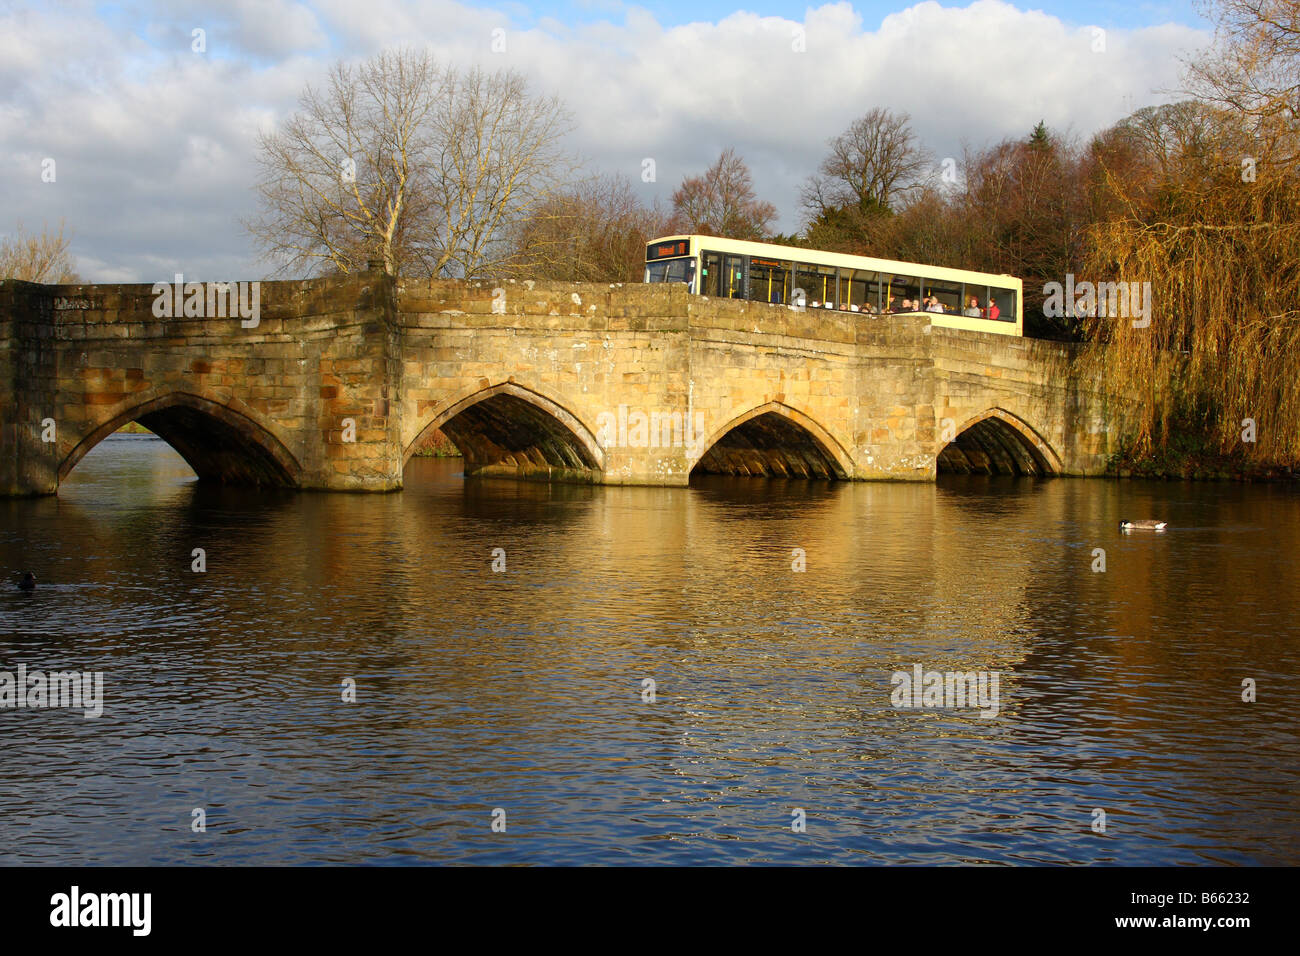 A rural bus service crossing a narrow bridge over the River Wye at Bakewell, Derbyshire, England, U.K. - Stock Image